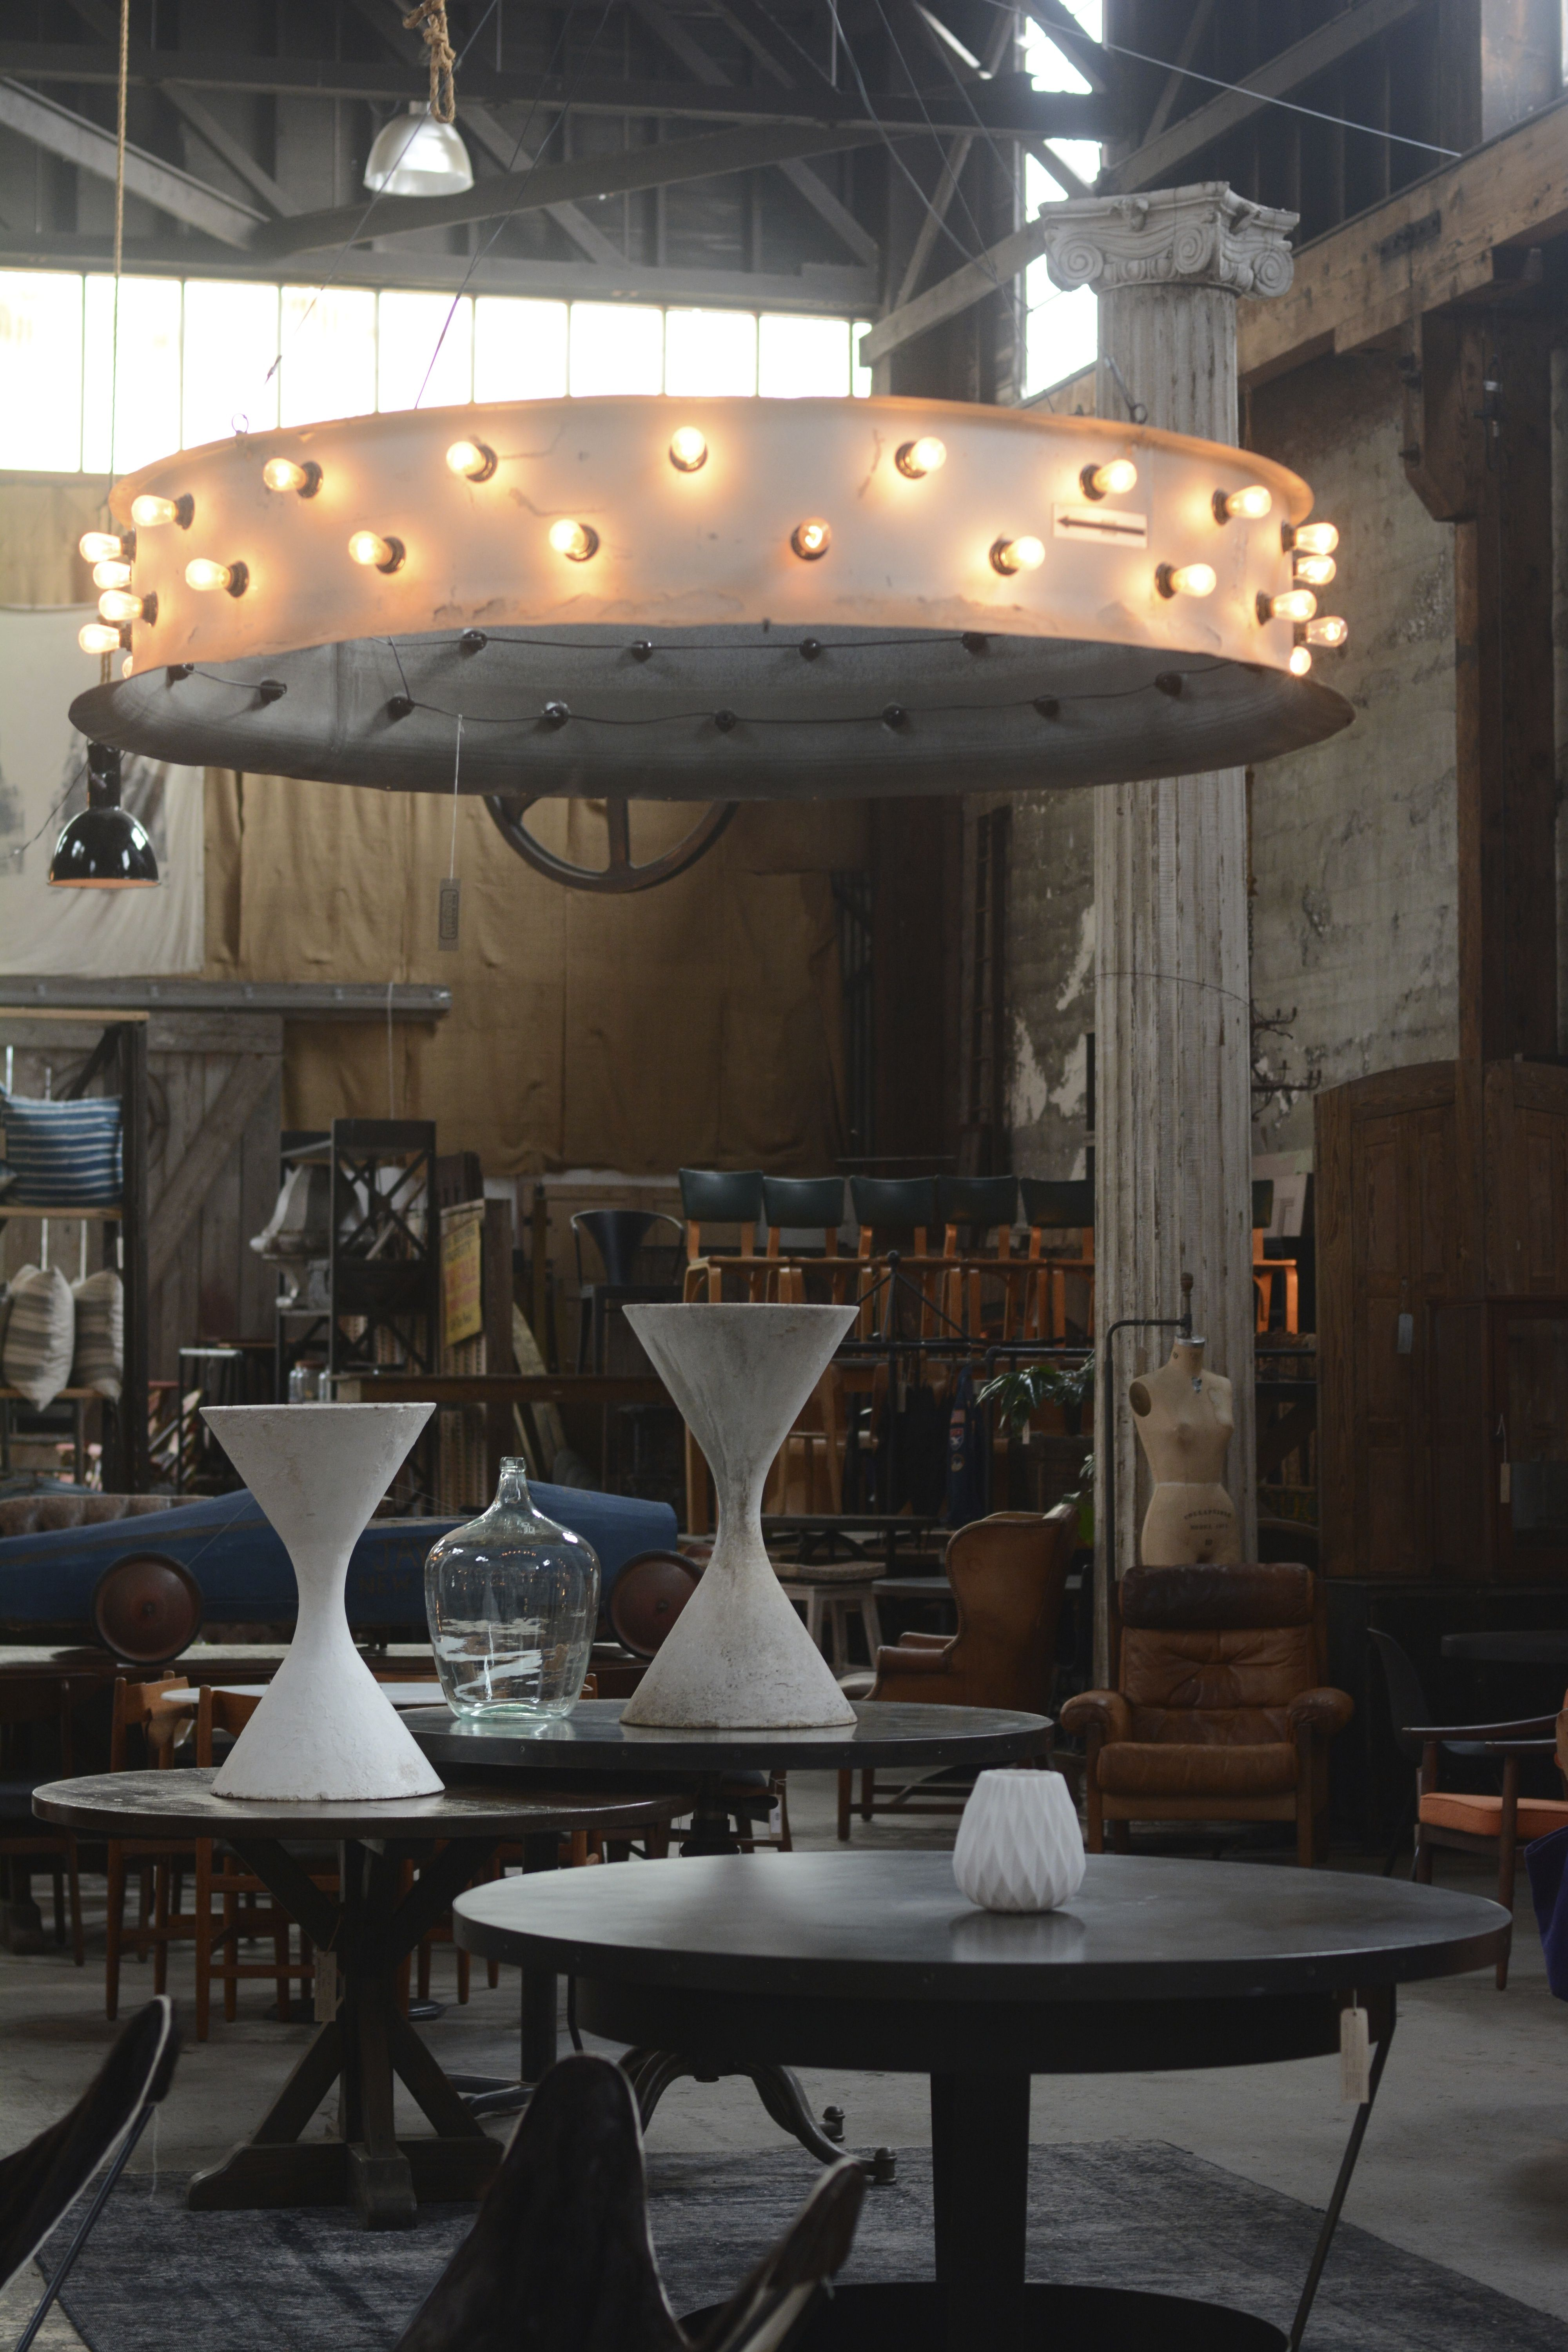 Moody mountain modern in our San Francisco showroom with our dramatic custom lighting and sculptural antiques. Architectural pottery and custom decor made with reclaimed materials. Big Daddy's Antiques. http://www.bdantiques.com/